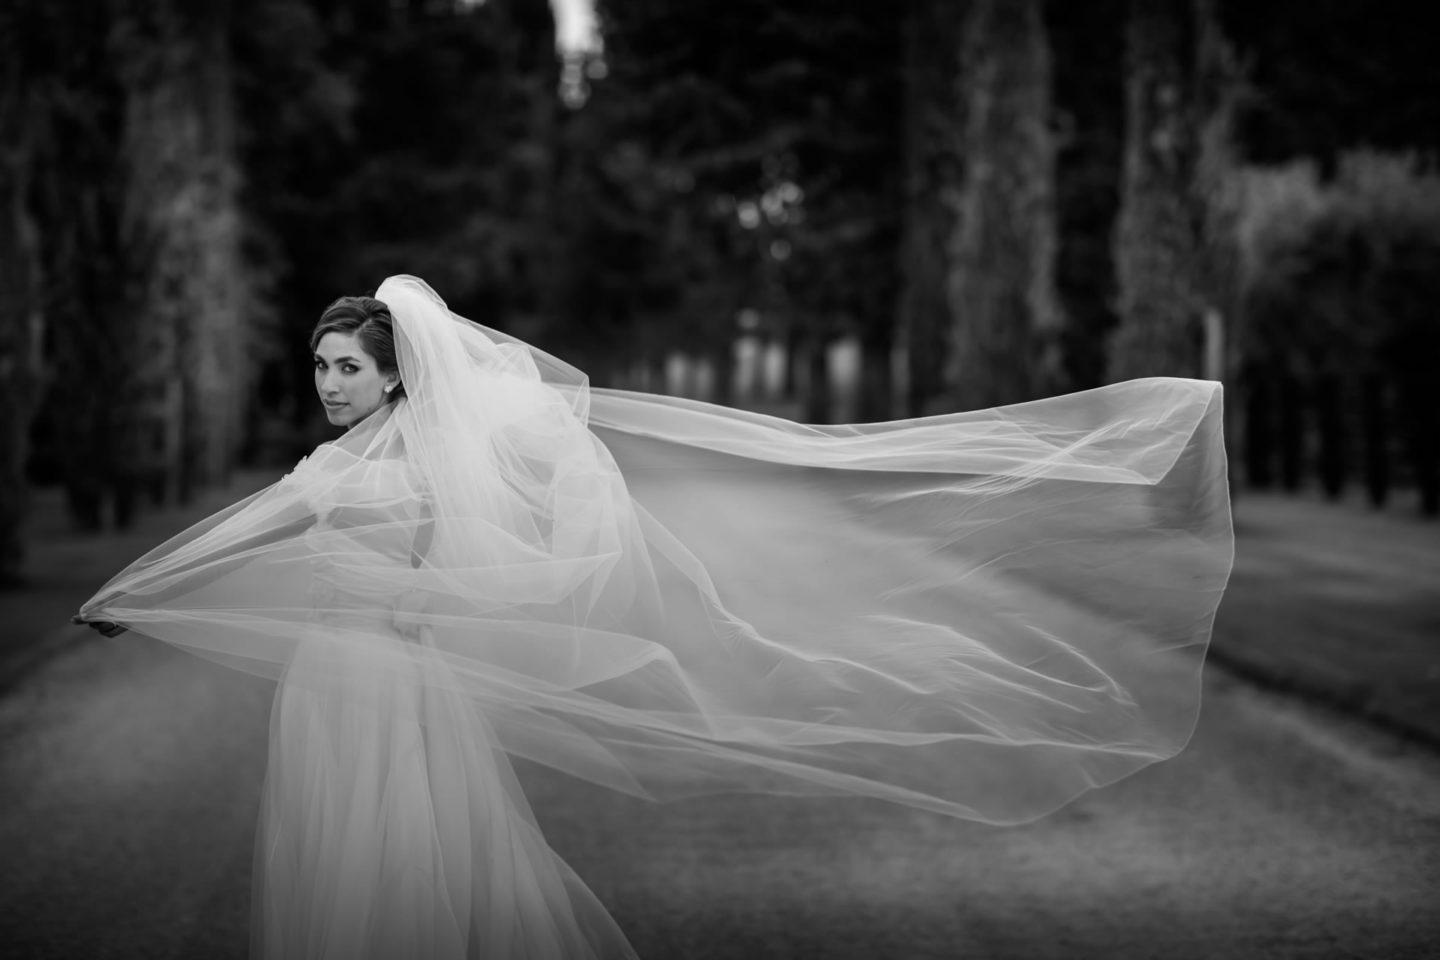 Veil :: Amazing wedding day at Il Borro :: Luxury wedding photography - 32 :: Veil